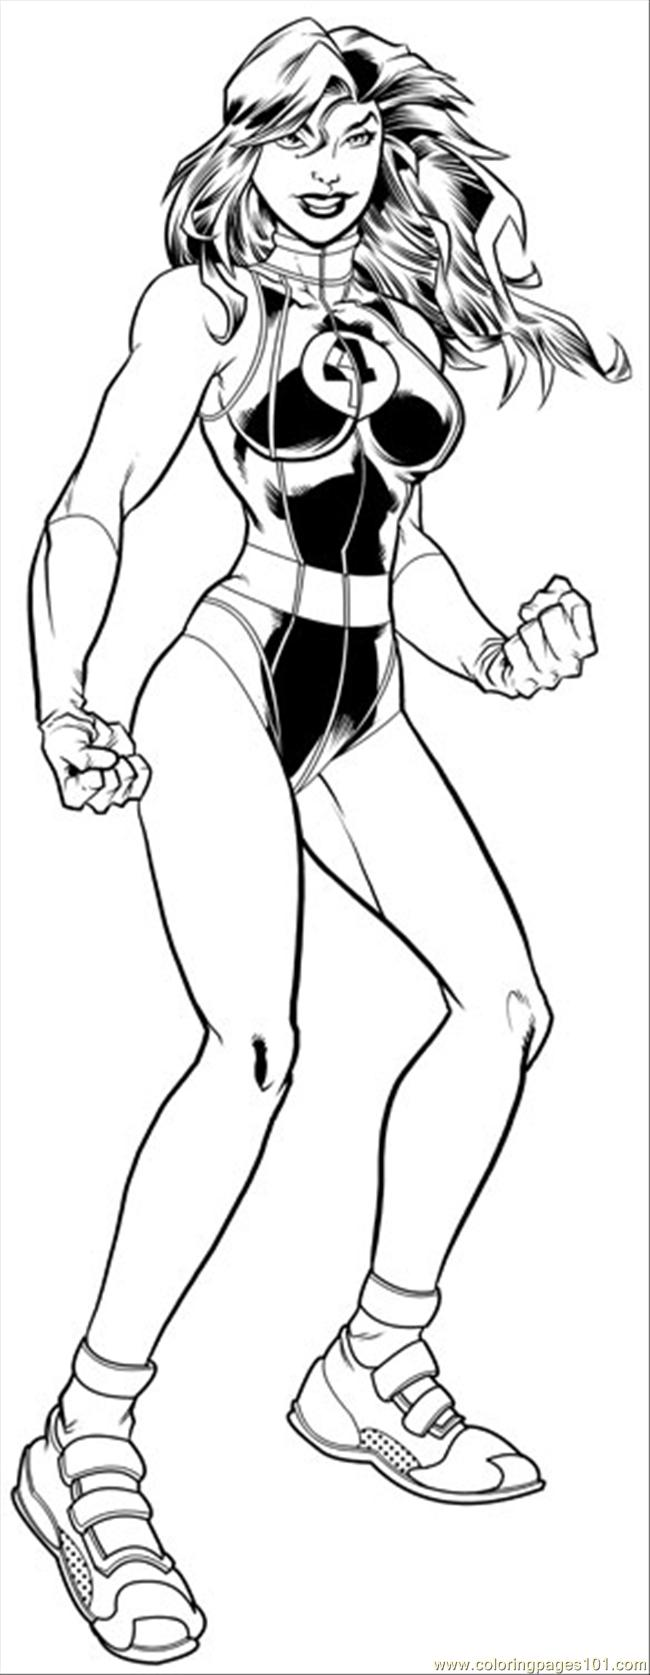 Shehulk Inks R2 Coloring Page Free Hulk Coloring Pages